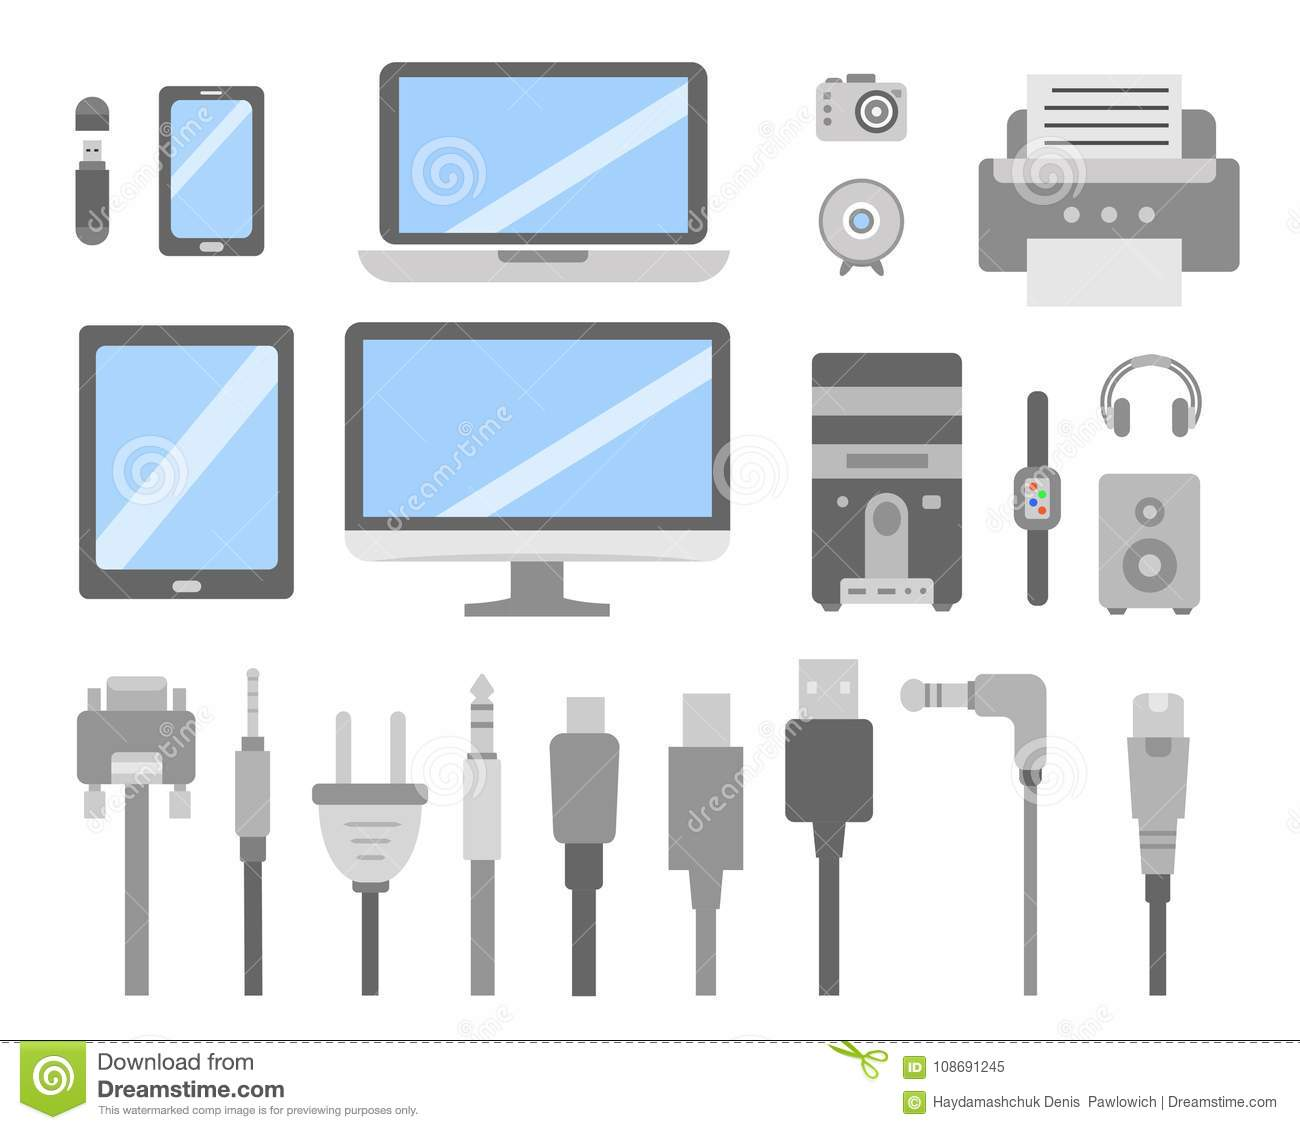 [DIAGRAM_38ZD]  Vector Set Of PC Gadgets And Devices Flat Icons. Cable Wire Computer And  Electricity Plug Collection. Stock Vector - Illustration of electronic,  illustration: 108691245 | Wiring Diagram Pc Icon |  | Dreamstime.com